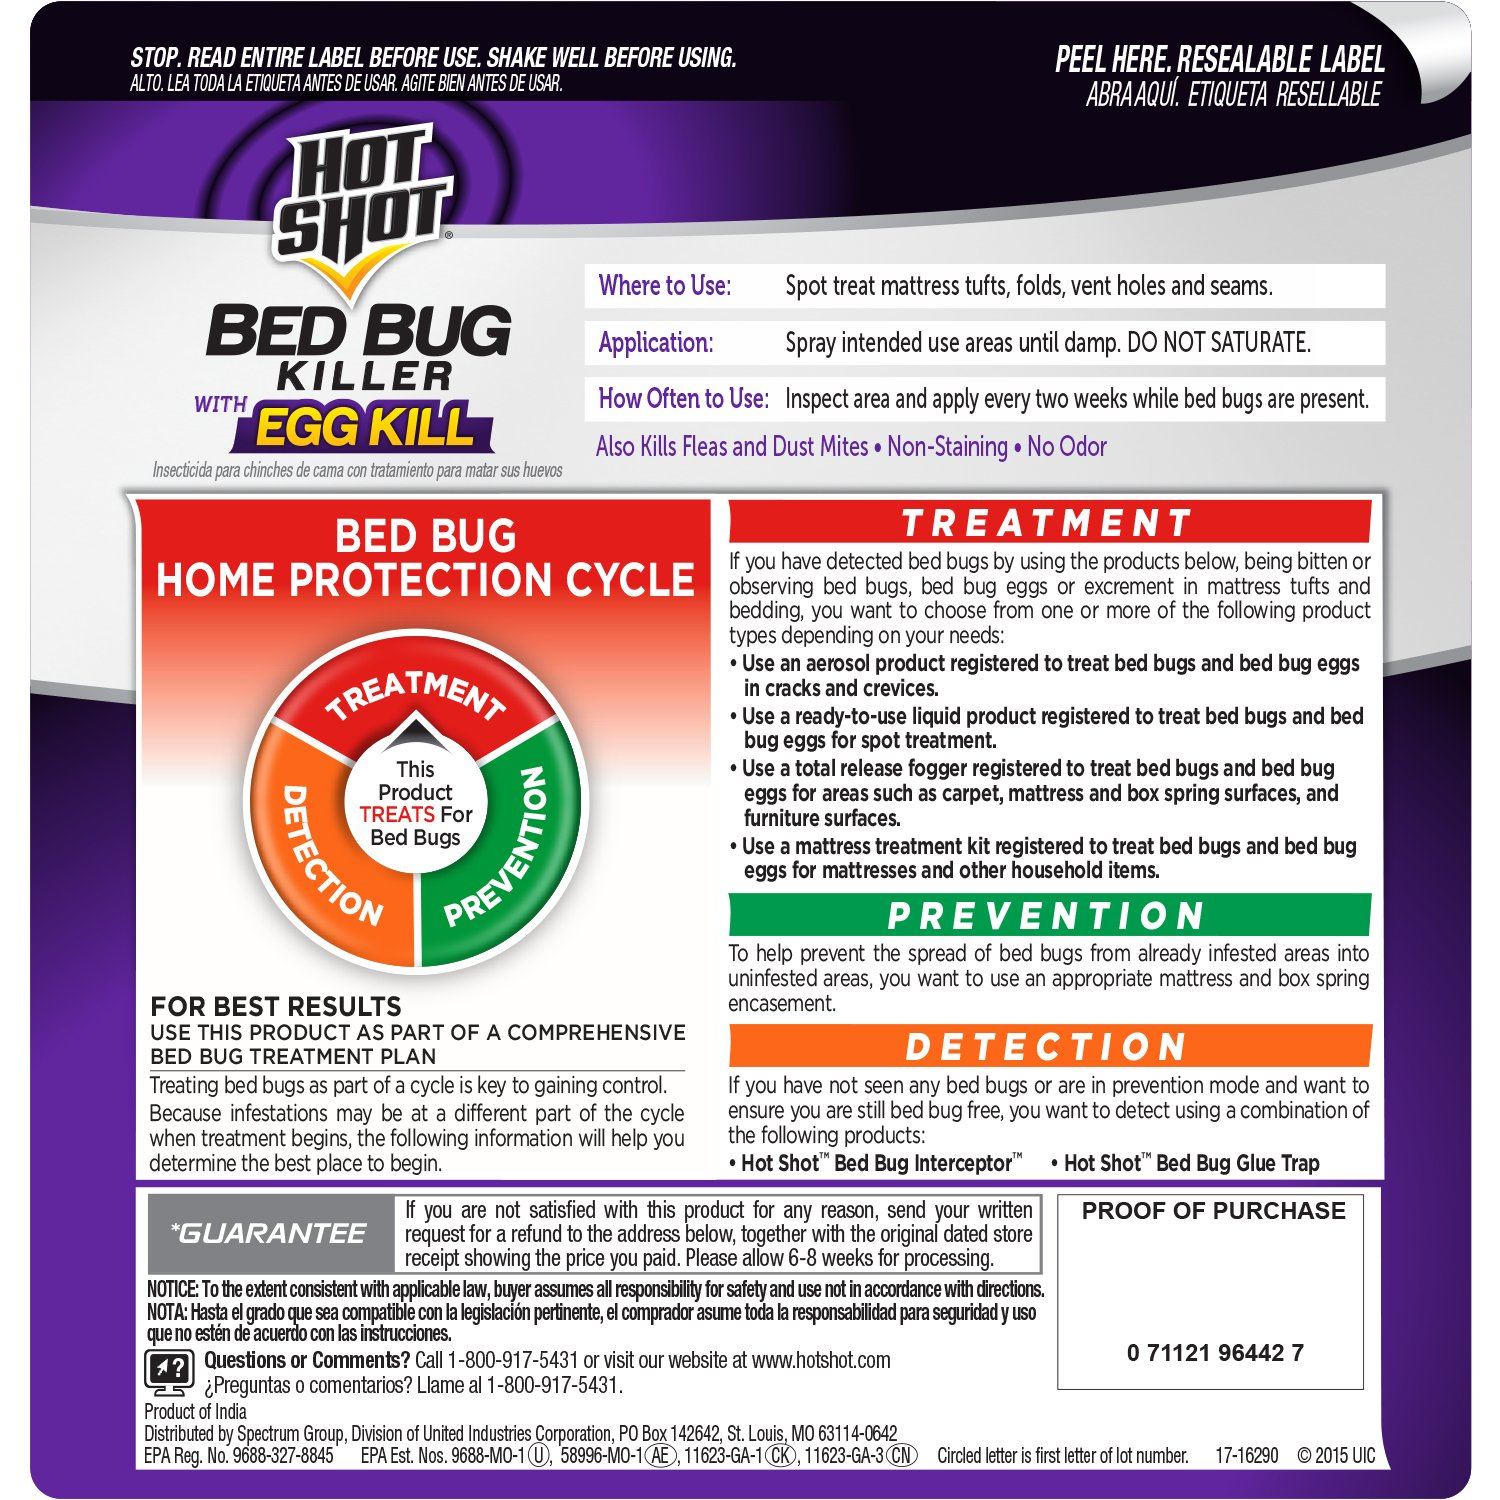 HOT SHOT BED BUG HOME PROTECTION CYCLE